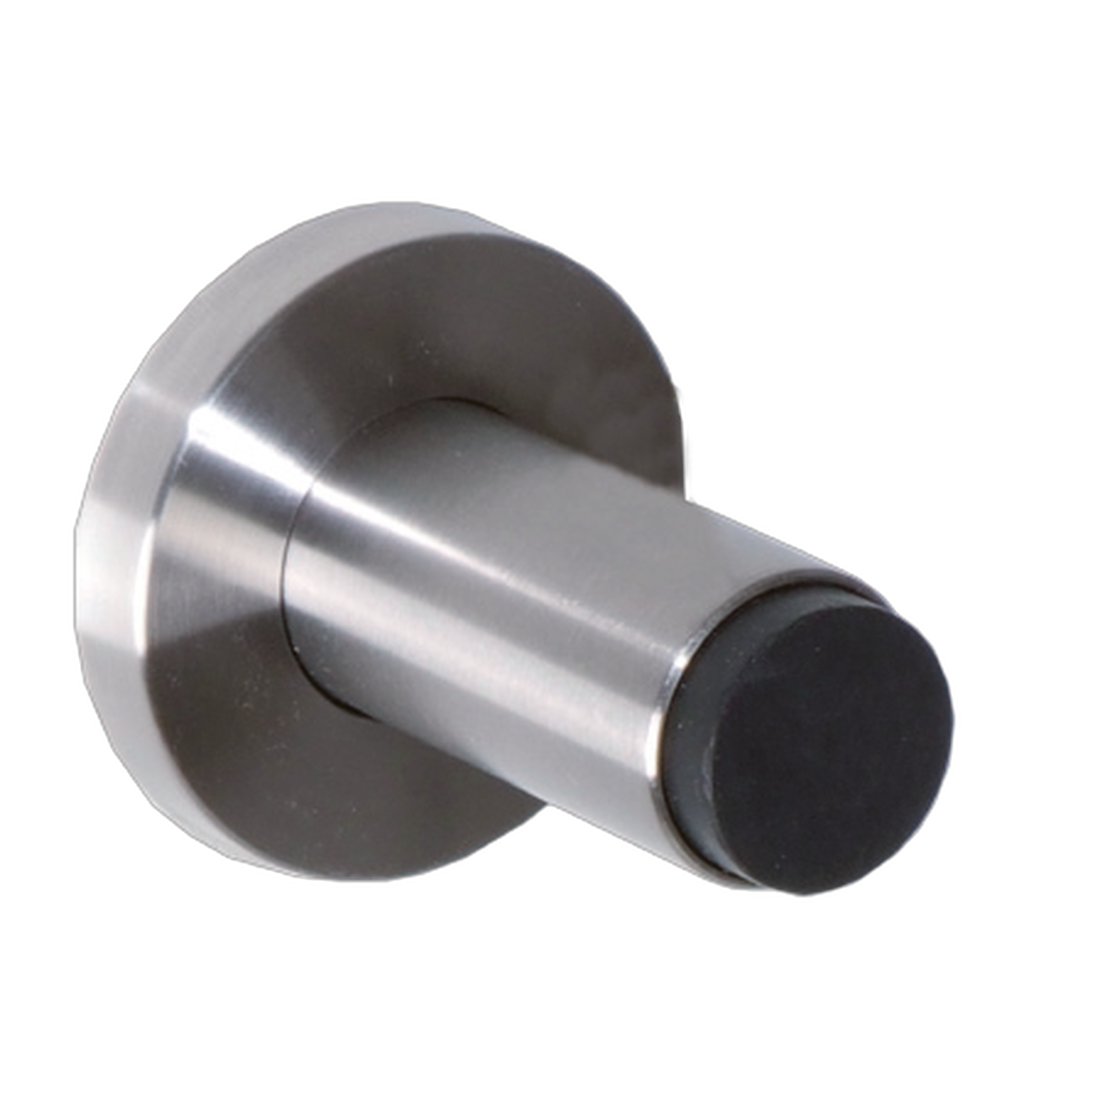 DOOR STOPPER FOR WALL MOUNTING, ø 22MM, L:65MM, MOUNTING PLATE